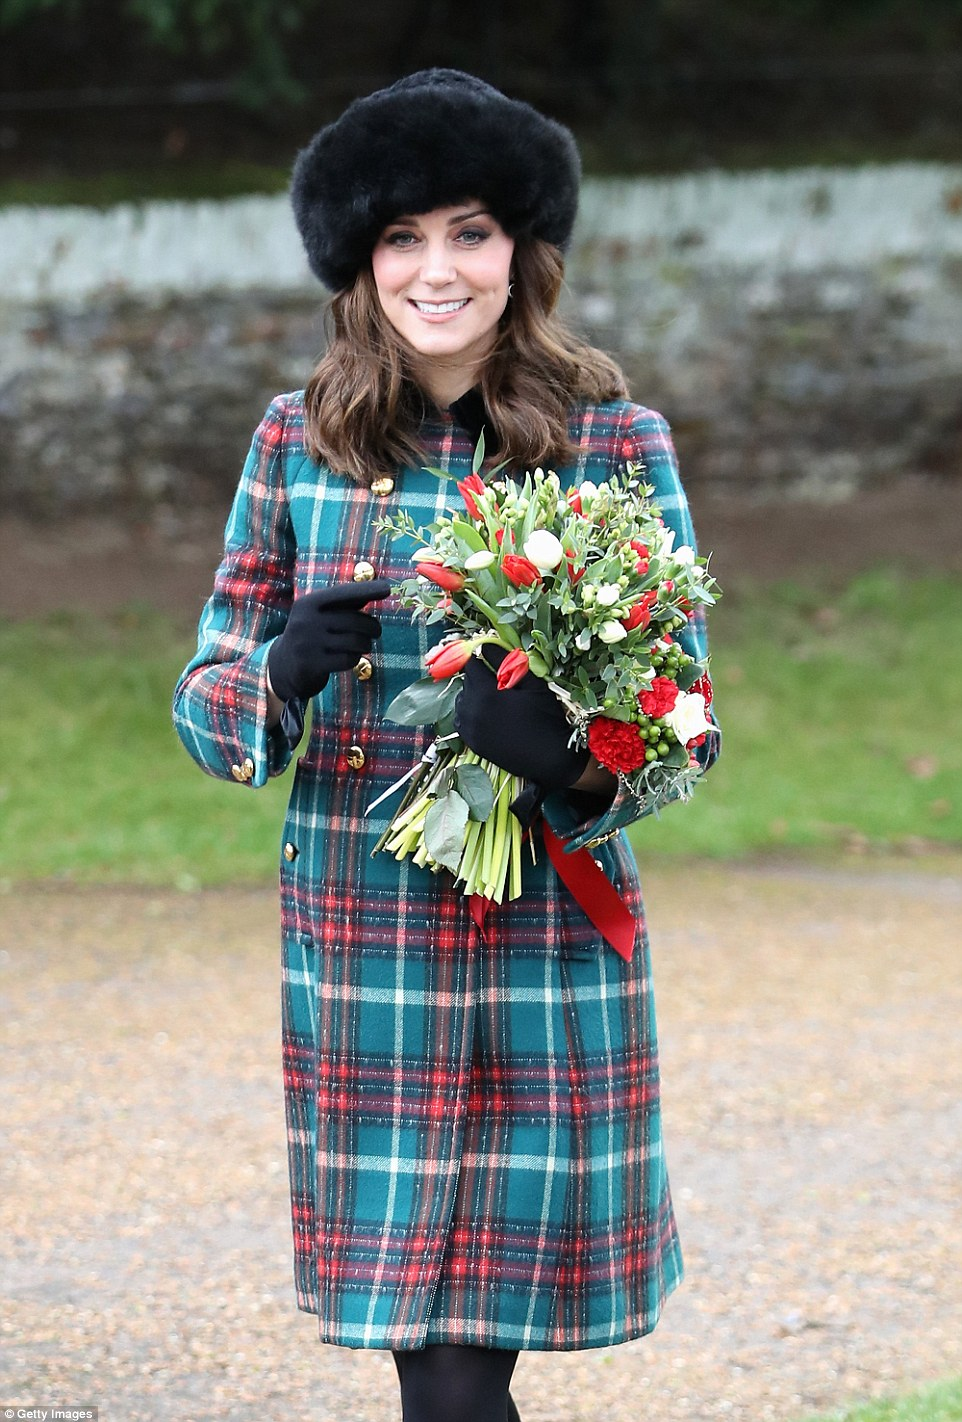 4791568D00000578-5211253-Kate_Middleton_flashed_a_smile_at_waiting_crowds_of_well_wishers-a-14_1514213782680.jpg